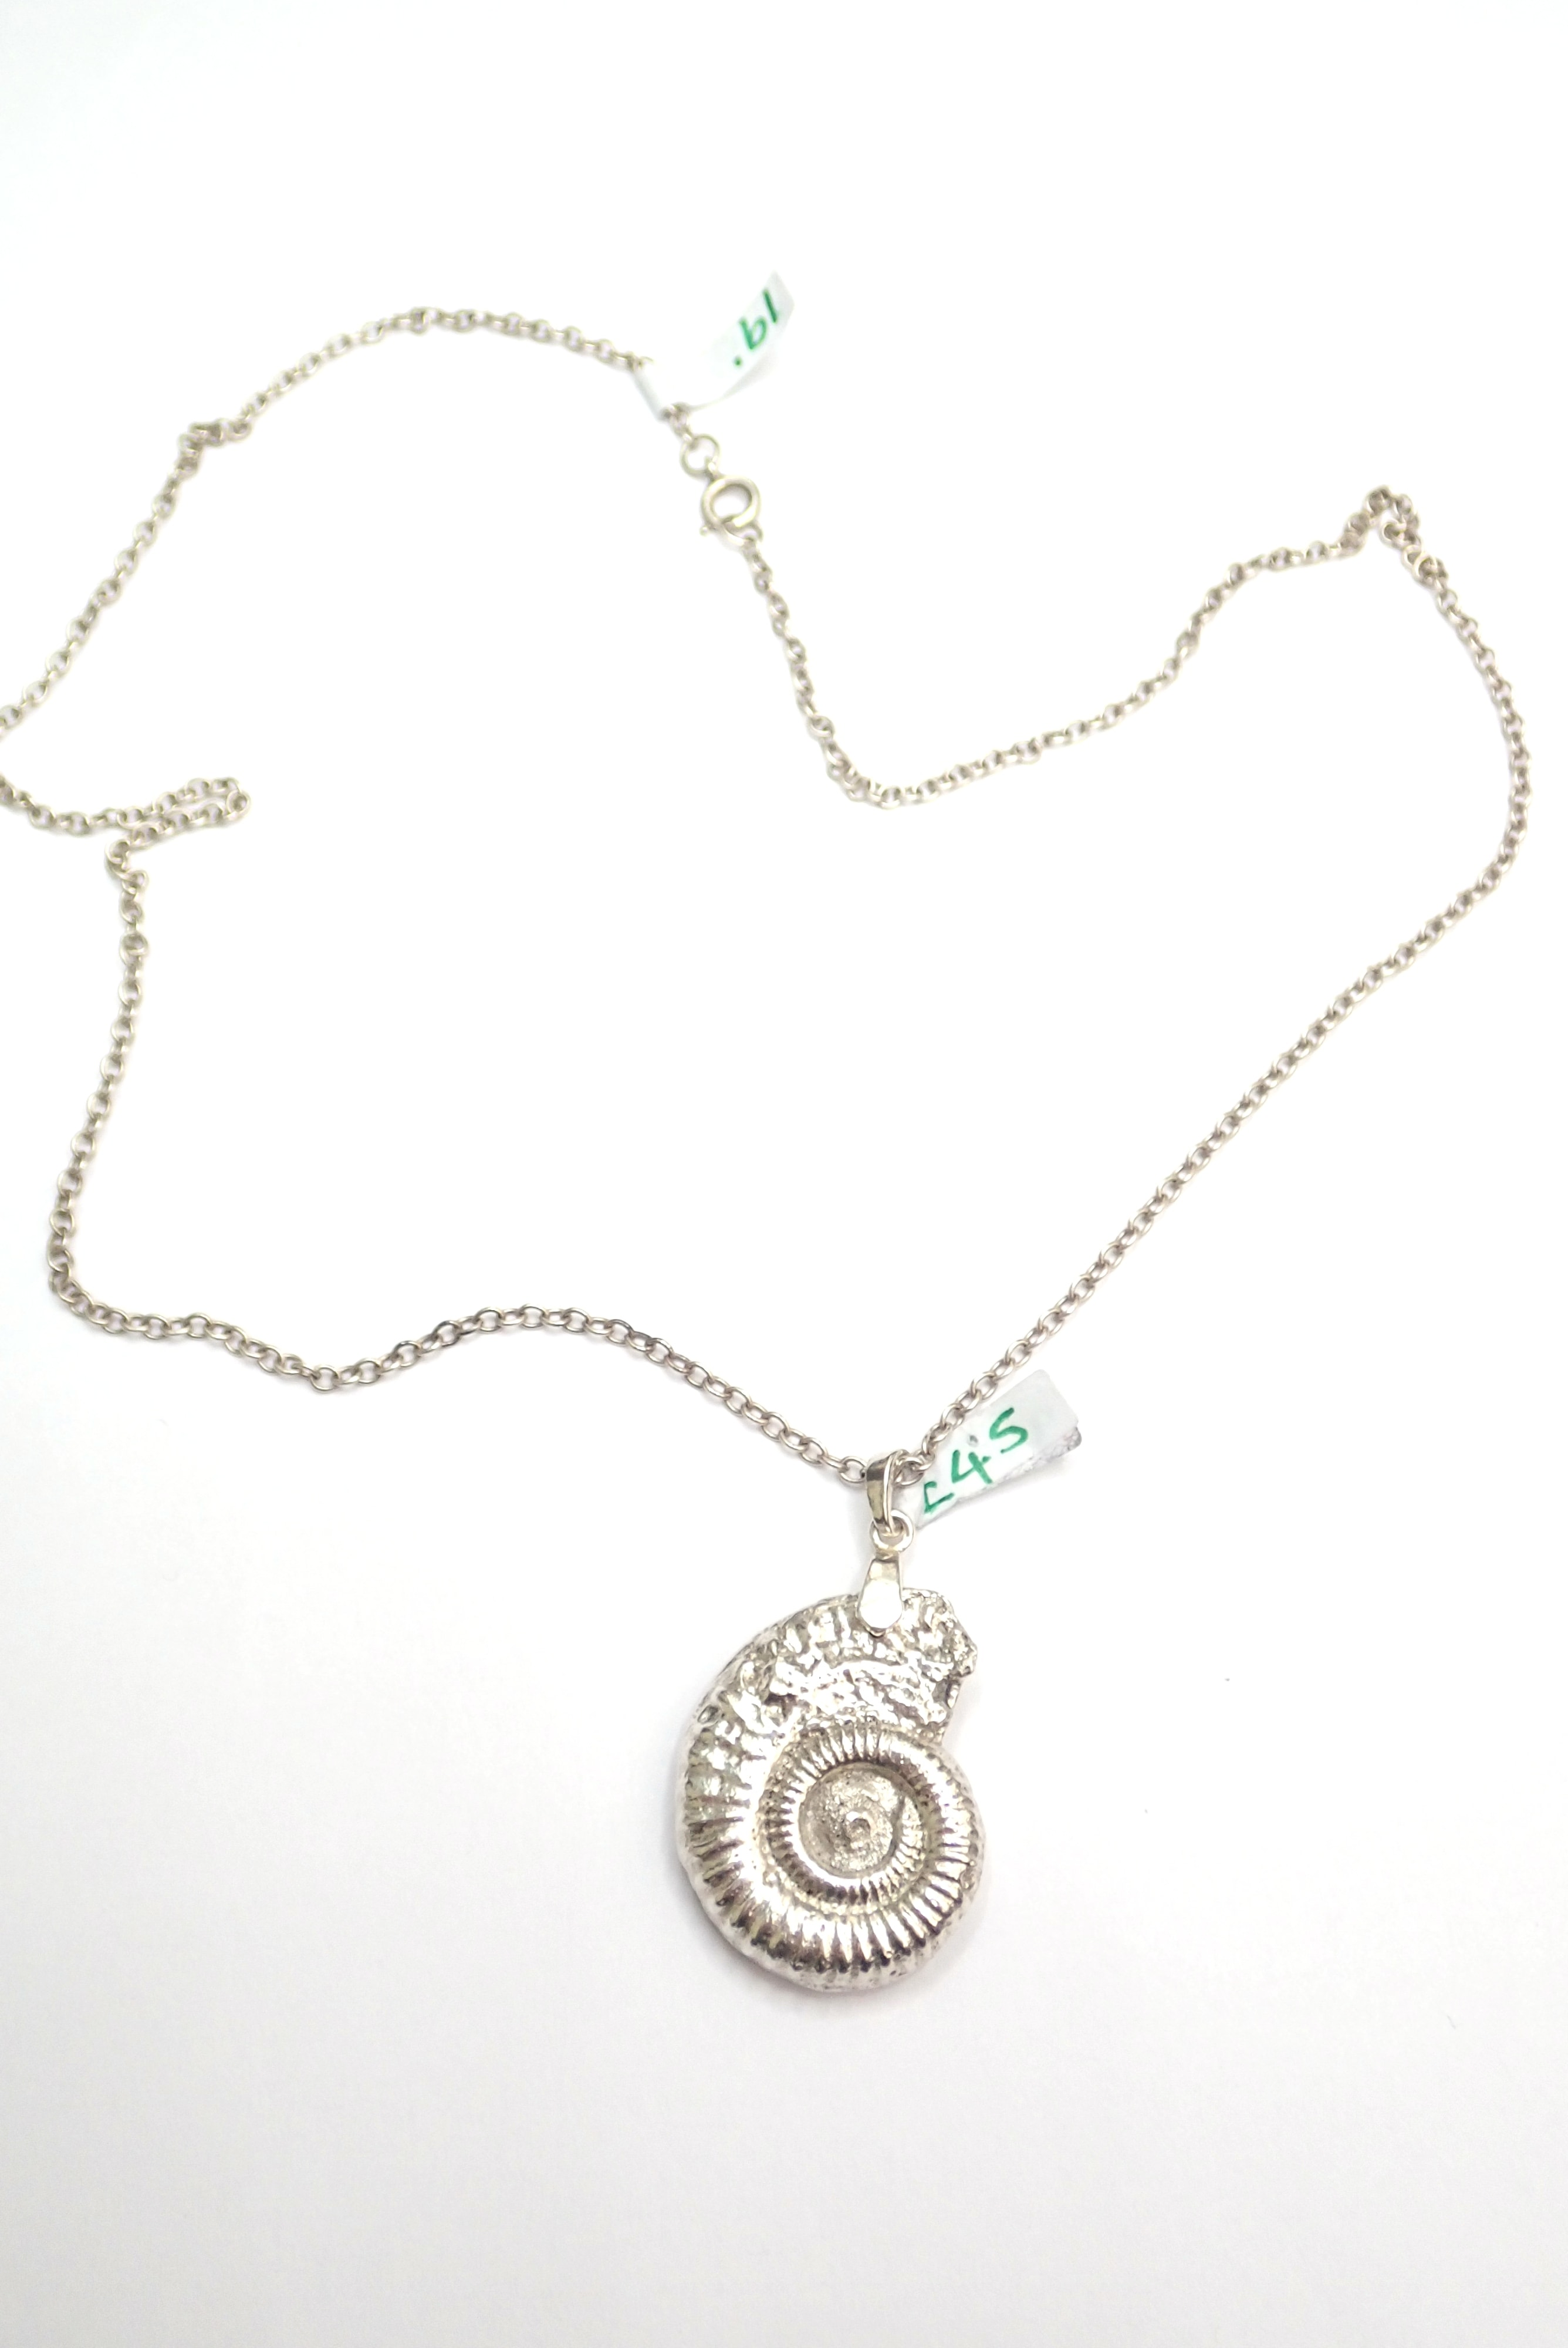 Stunning! Solid 925 Sterling Silver Handmade Ammonite Pendant with 19″ Belcher chain # 17.6g